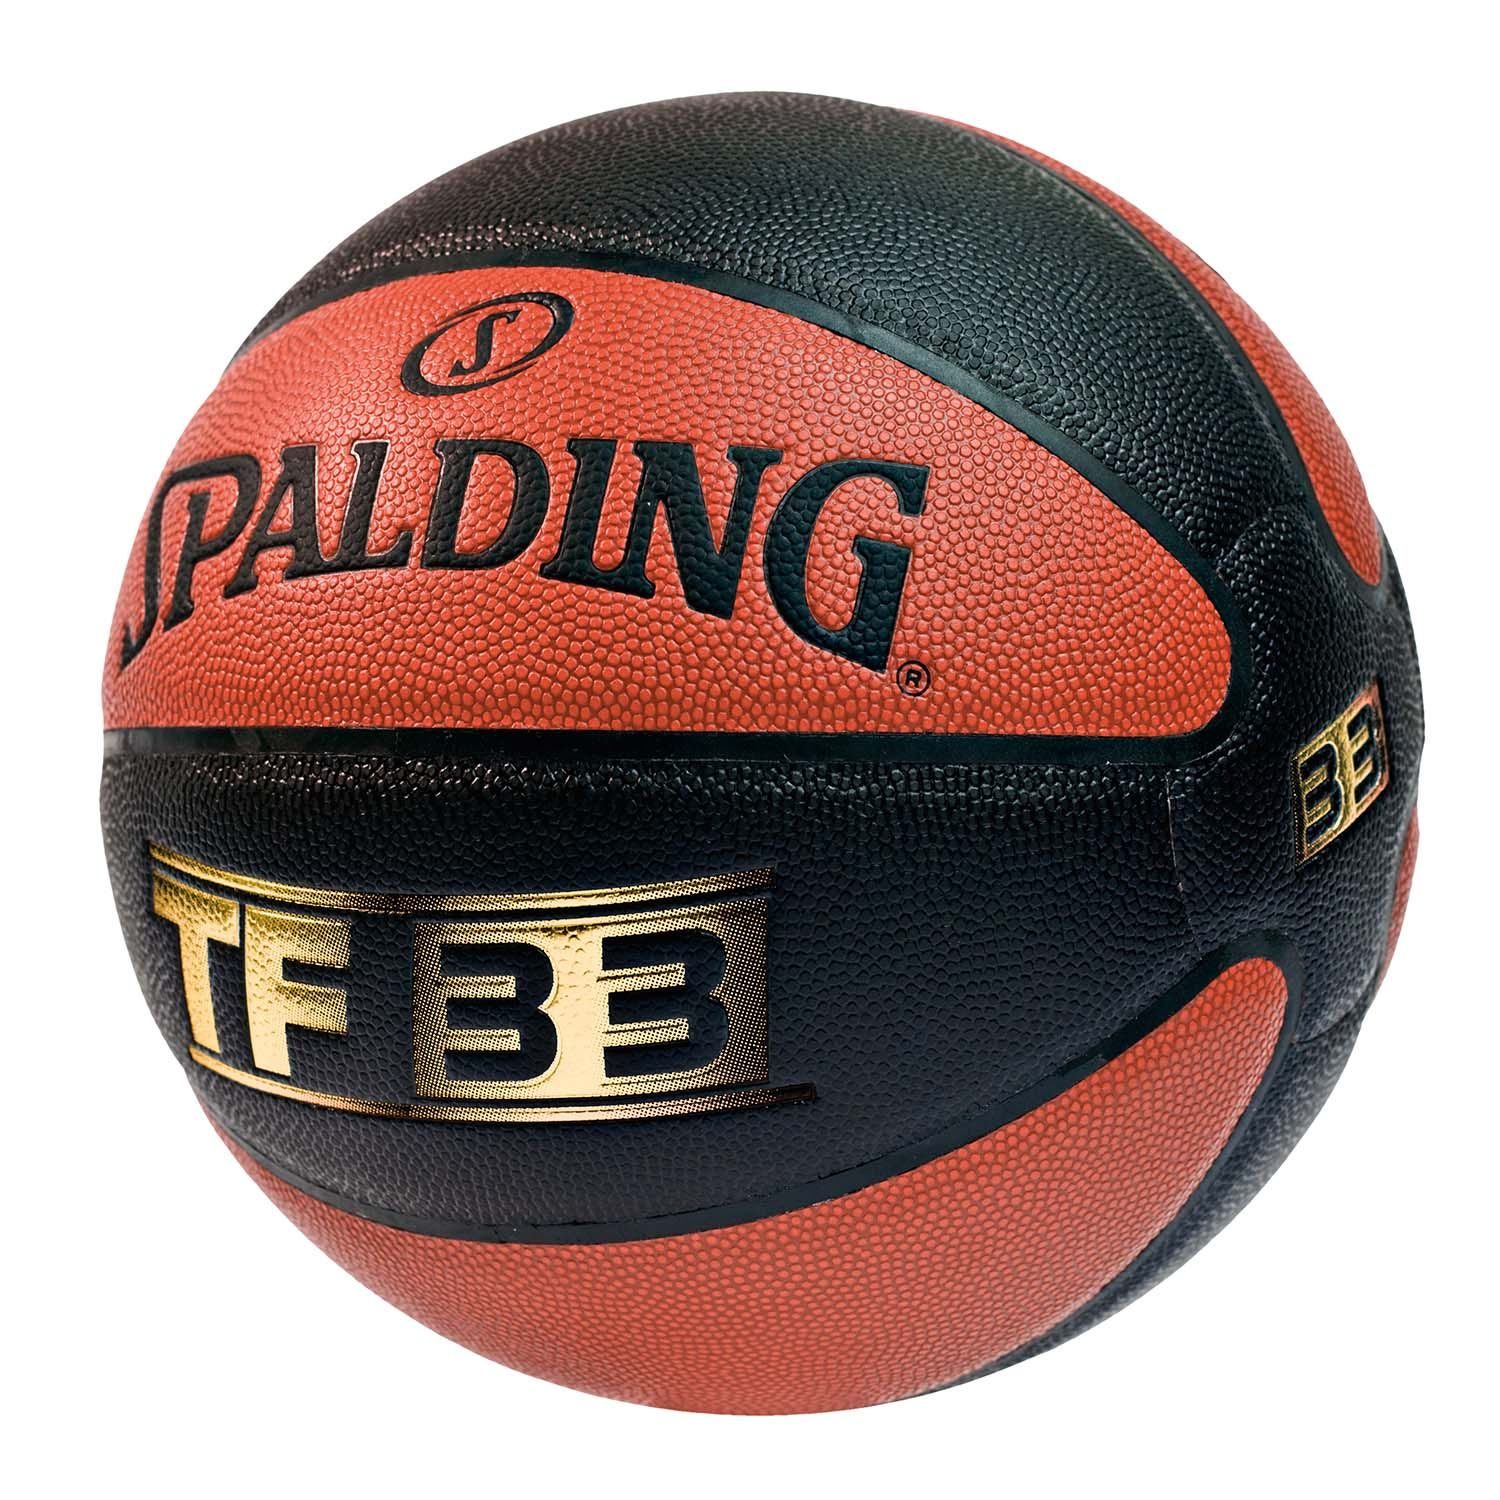 Outdoor 33 Spalding Tf 33 Indoor/outdoor 2013 Basketball - Sweatband.com